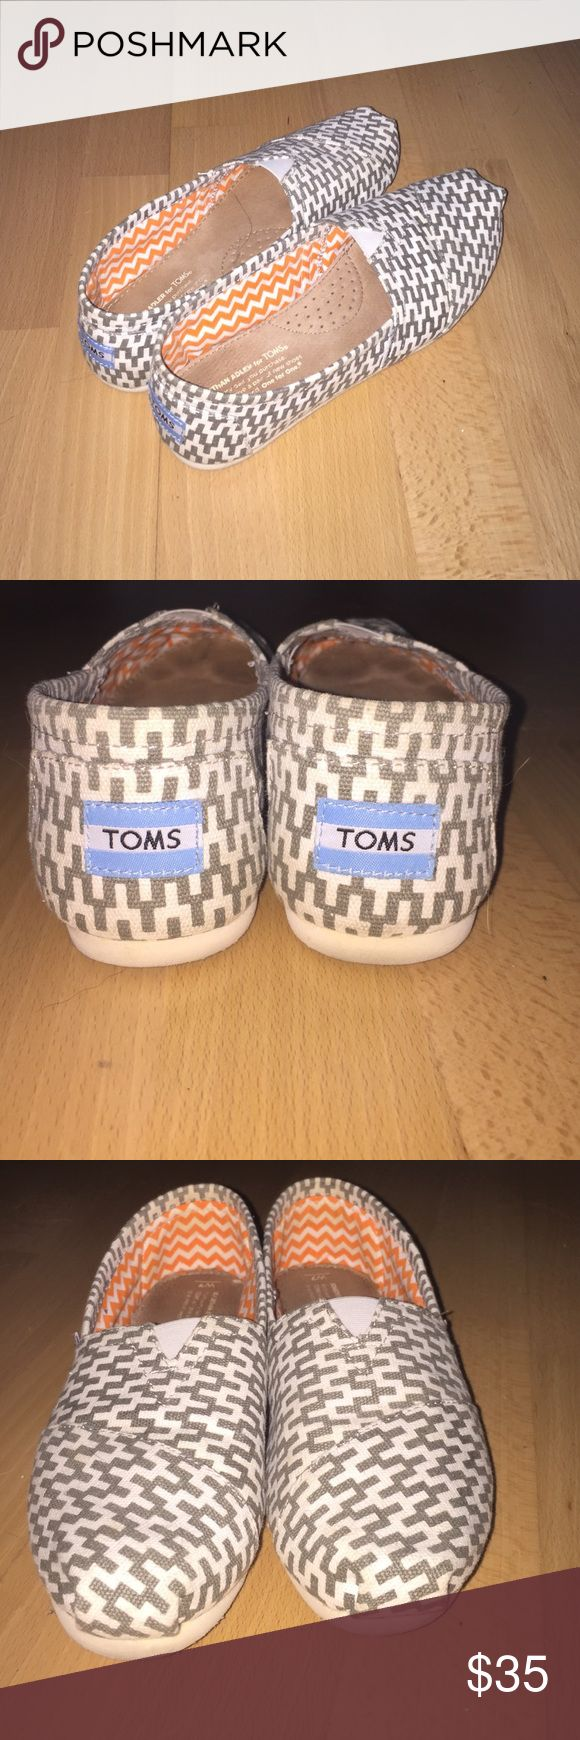 Chevron TOMs Chevron cream and grey TOMS size 7. Worn once, practically brand new condition with no flaws. TOMS Shoes